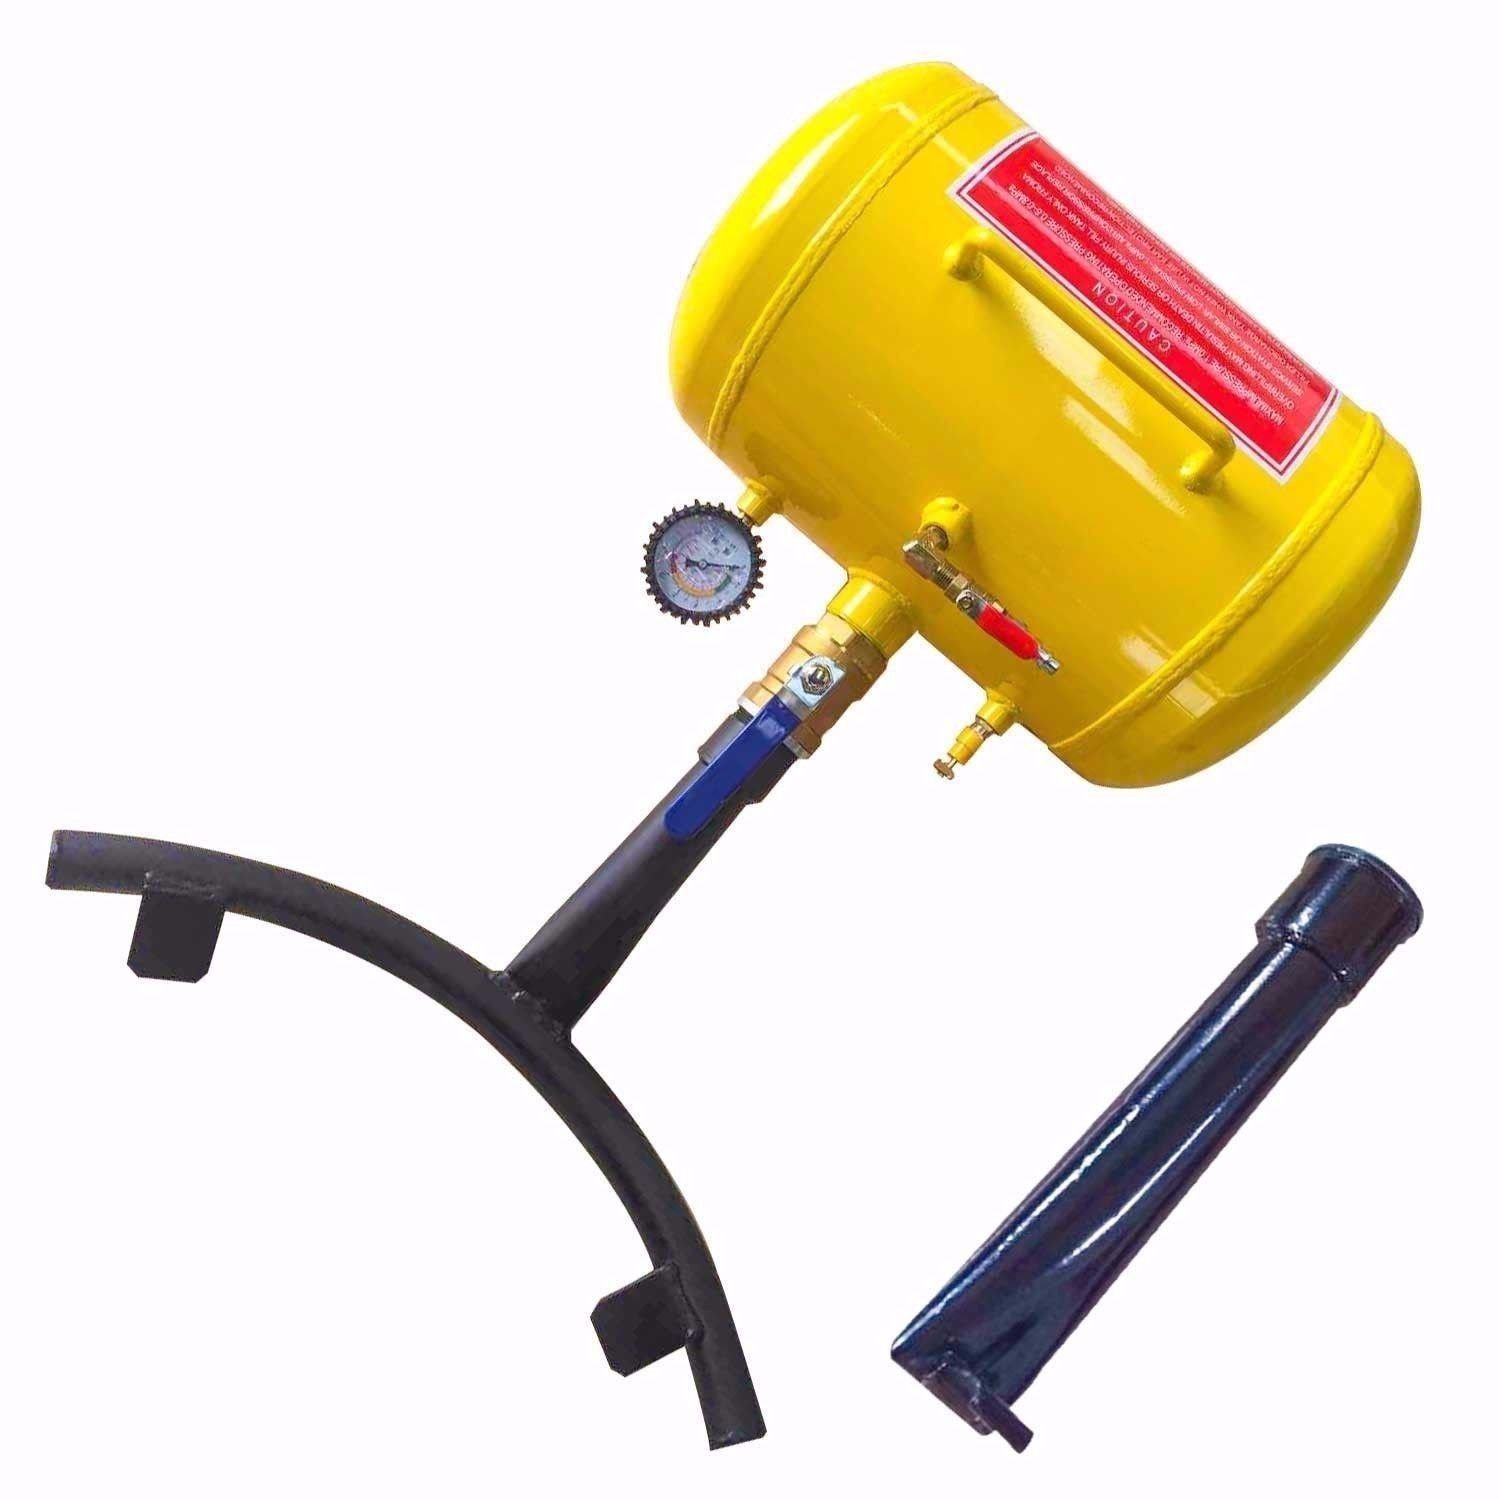 10 Gallon Air Bead Seater Tire Tool Blaster